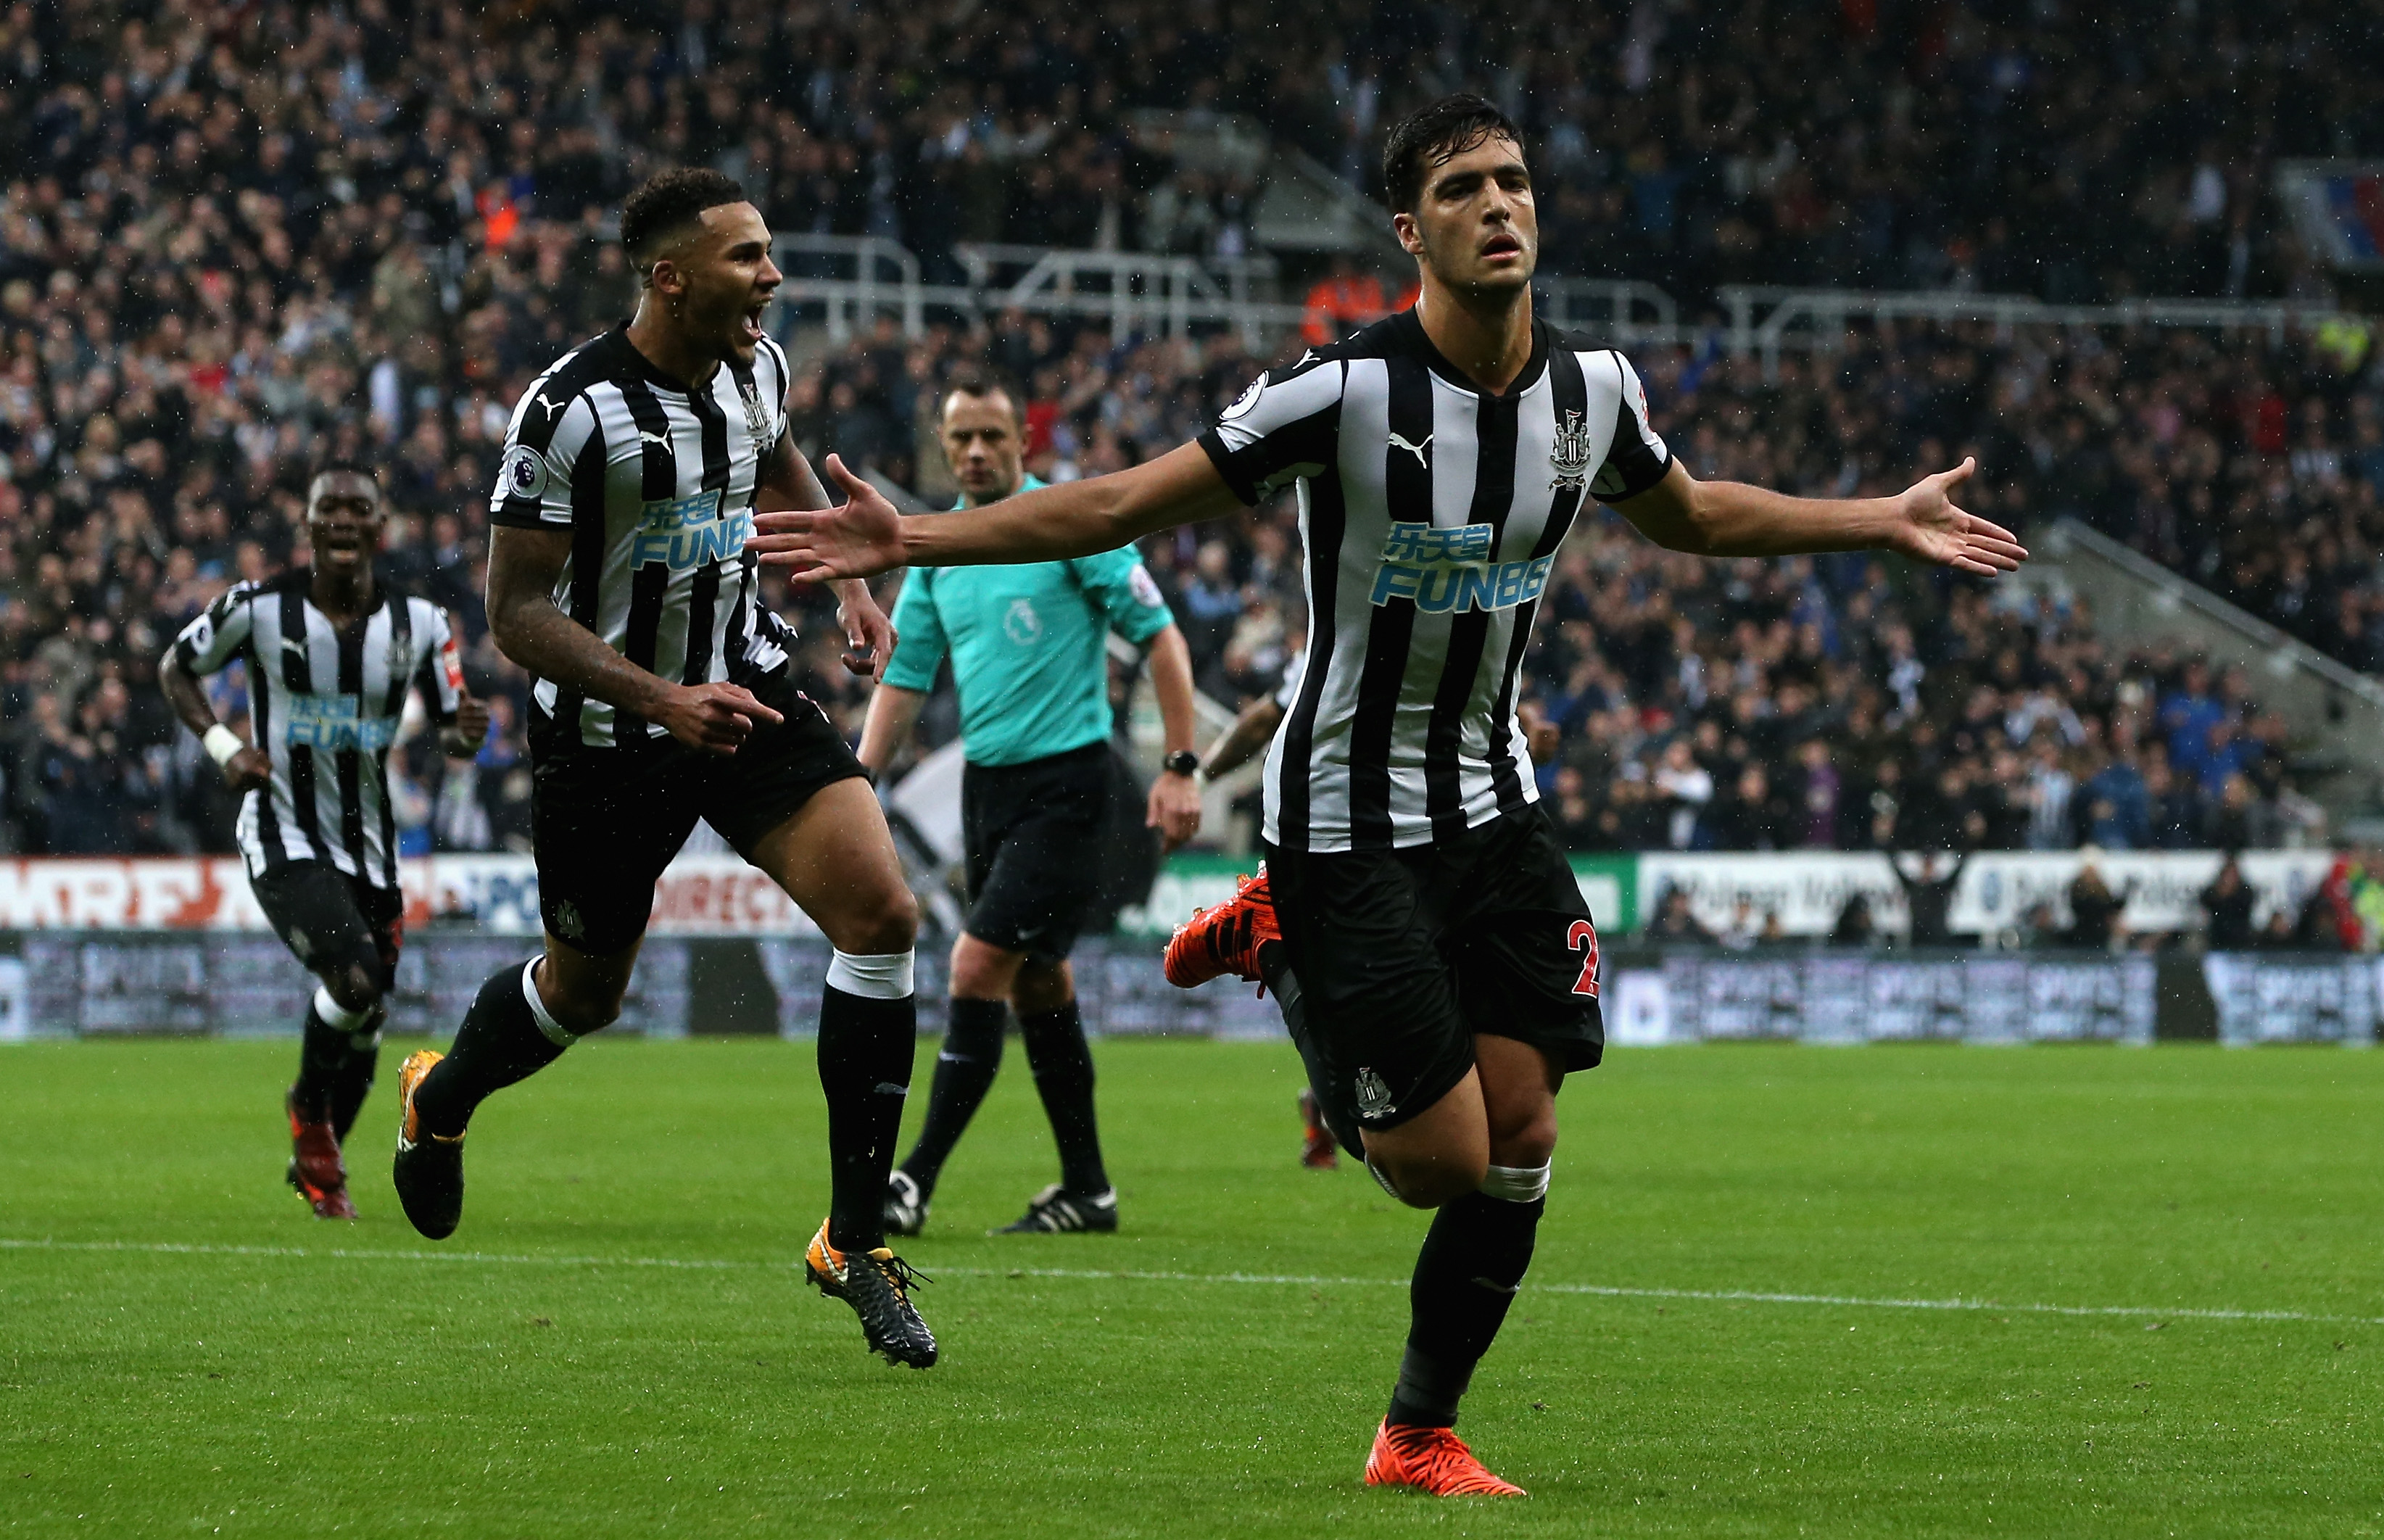 Newcastle boss Benitez to be handed £500 MILLION for transfer plans